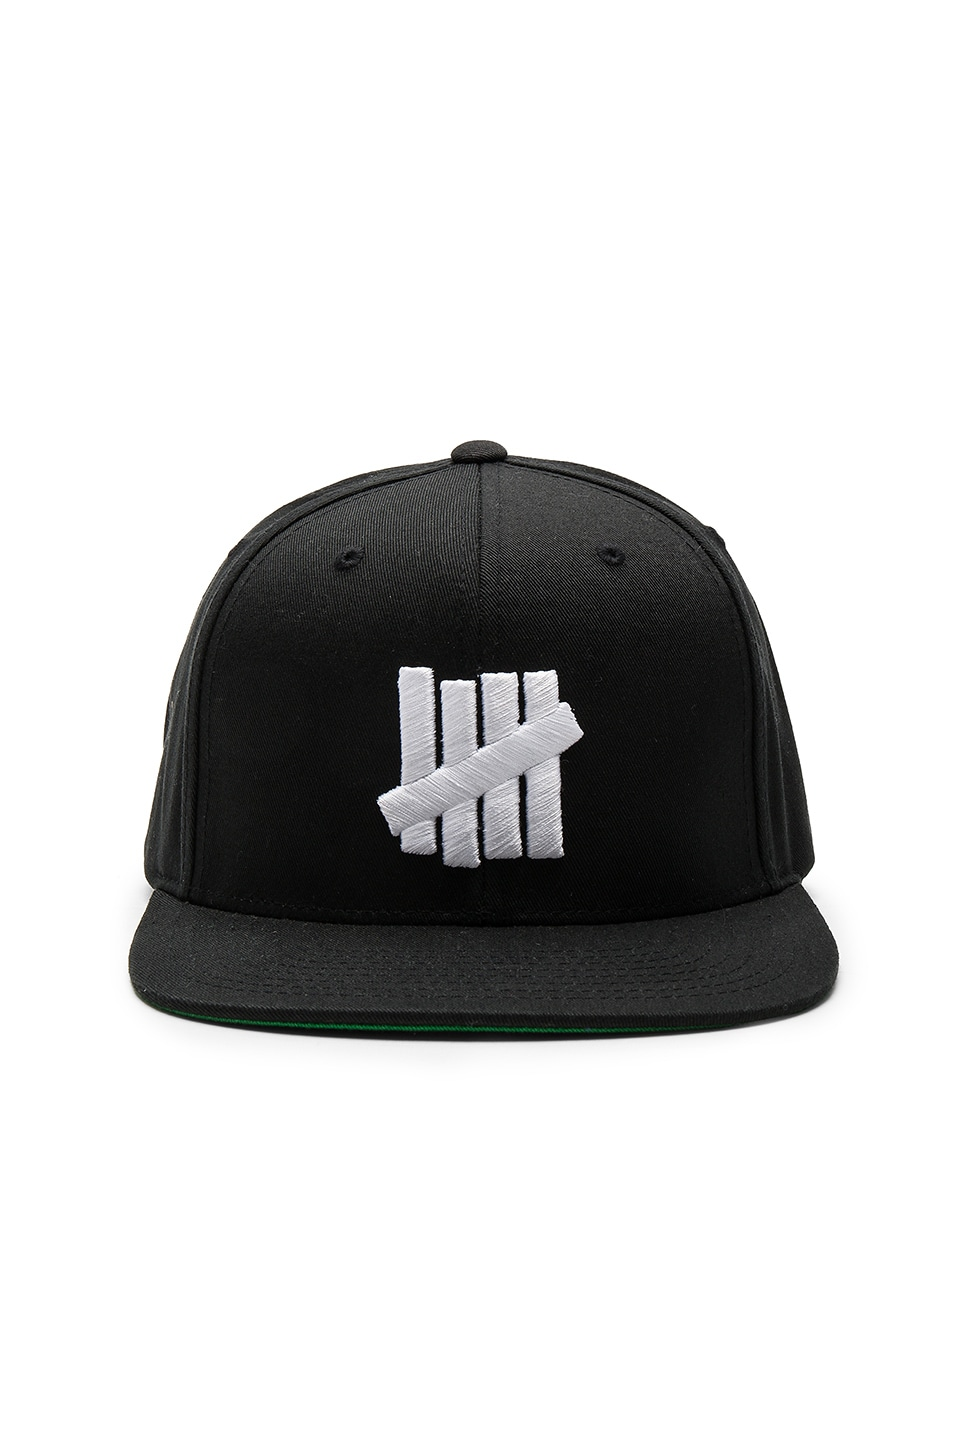 5 Strike Snapback by Undefeated